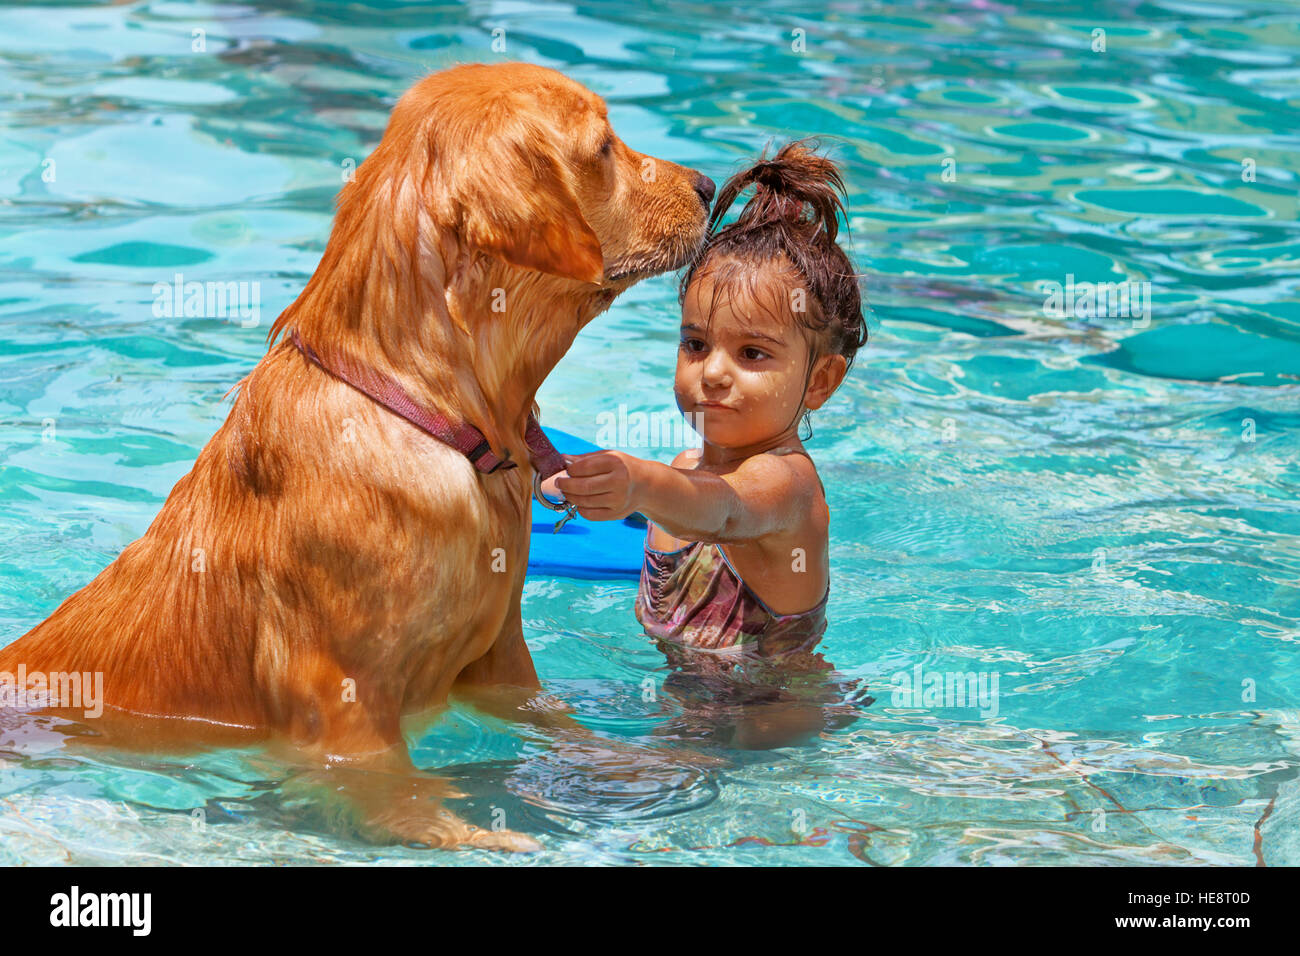 Funny photo of little baby swimming in outdoor pool, playing with retriever puppy. Children water sports activity. - Stock Image